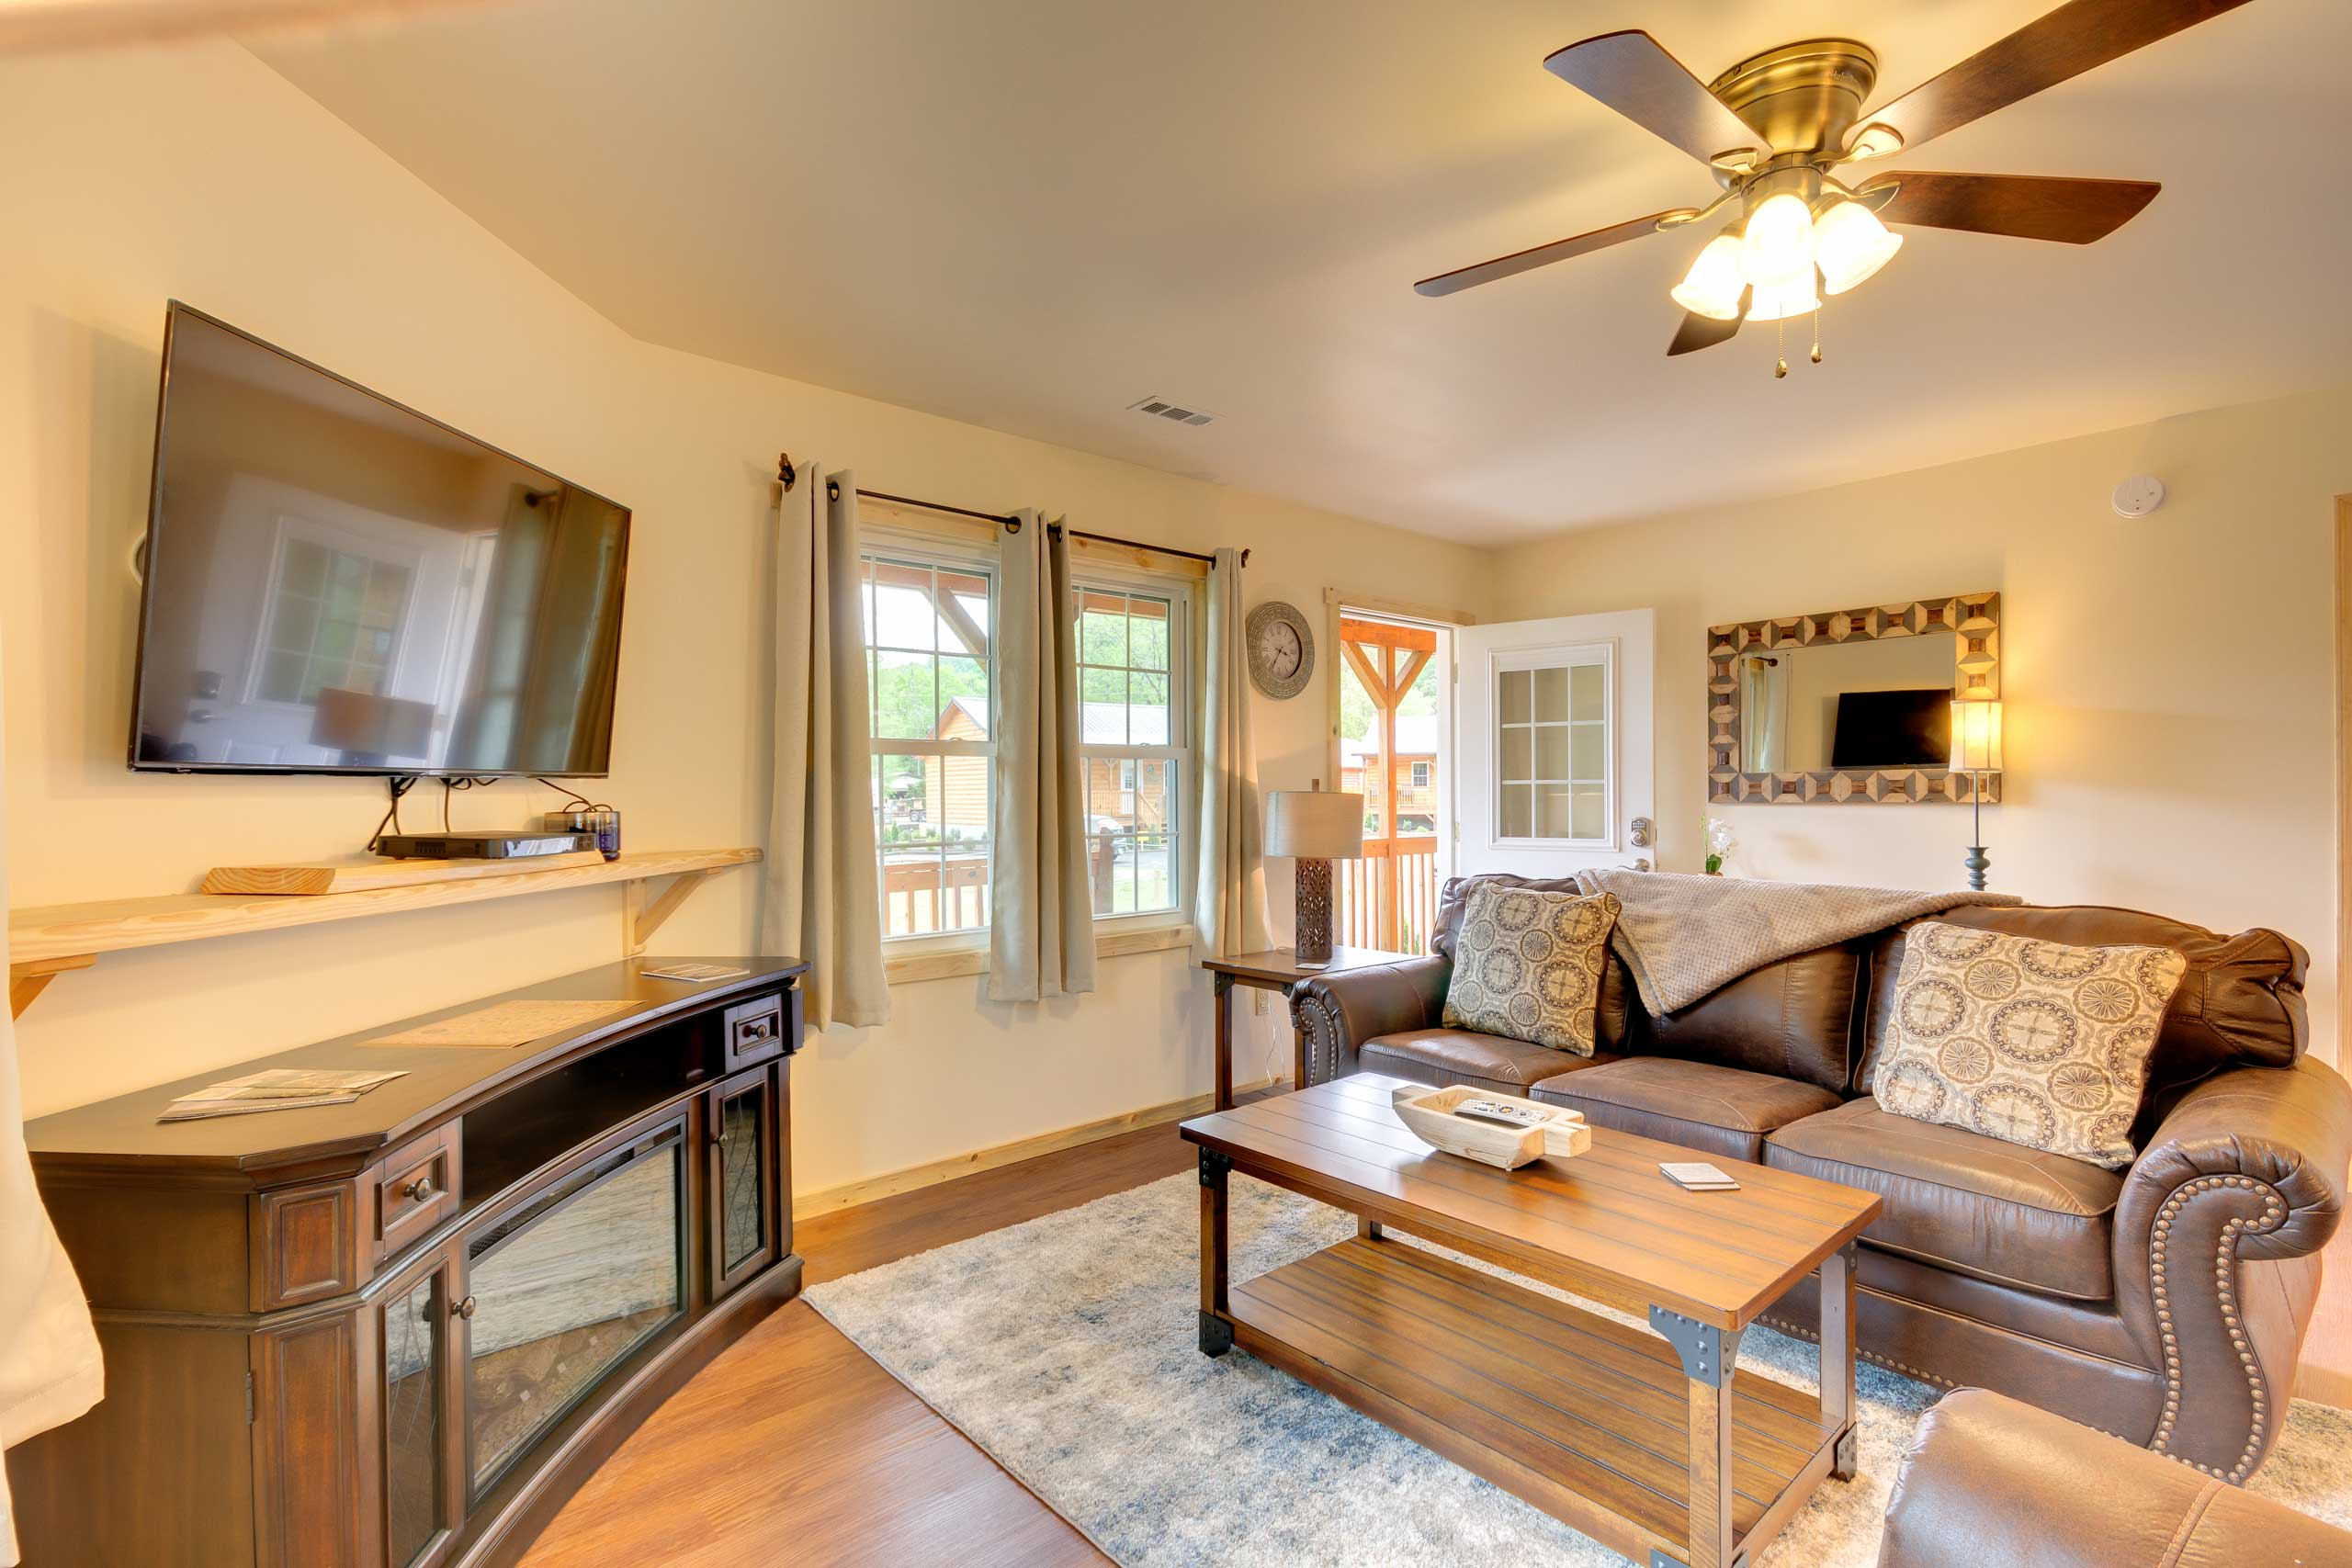 Enjoy modern conveniences including an electric fireplace and cable TV.